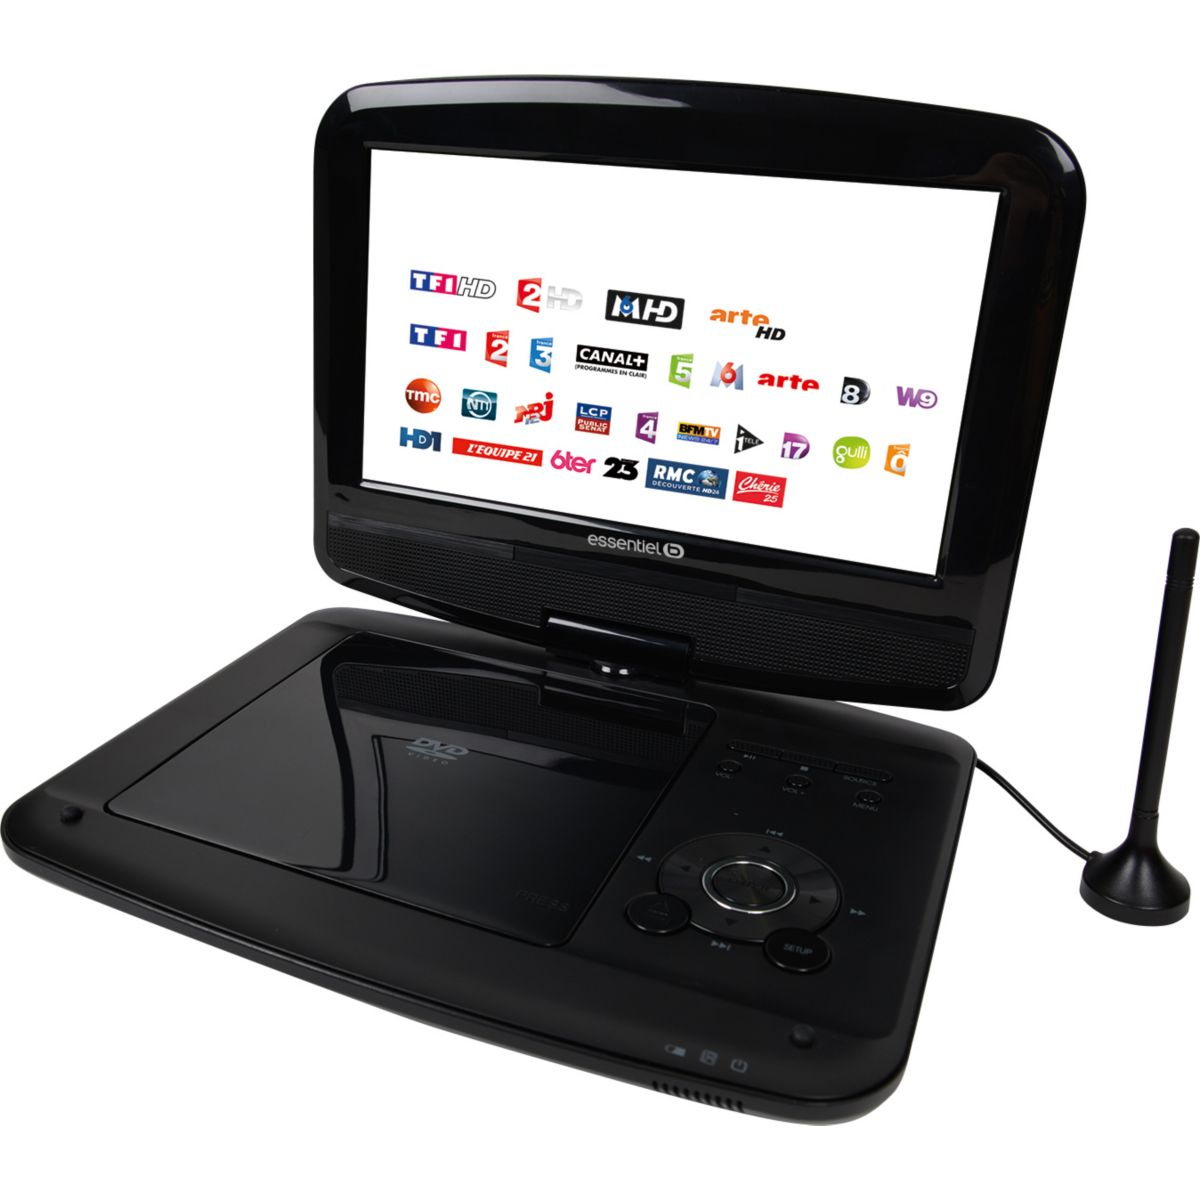 essentielb mobililive iii lecteur dvd portable 9 tnt hd comparer avec. Black Bedroom Furniture Sets. Home Design Ideas